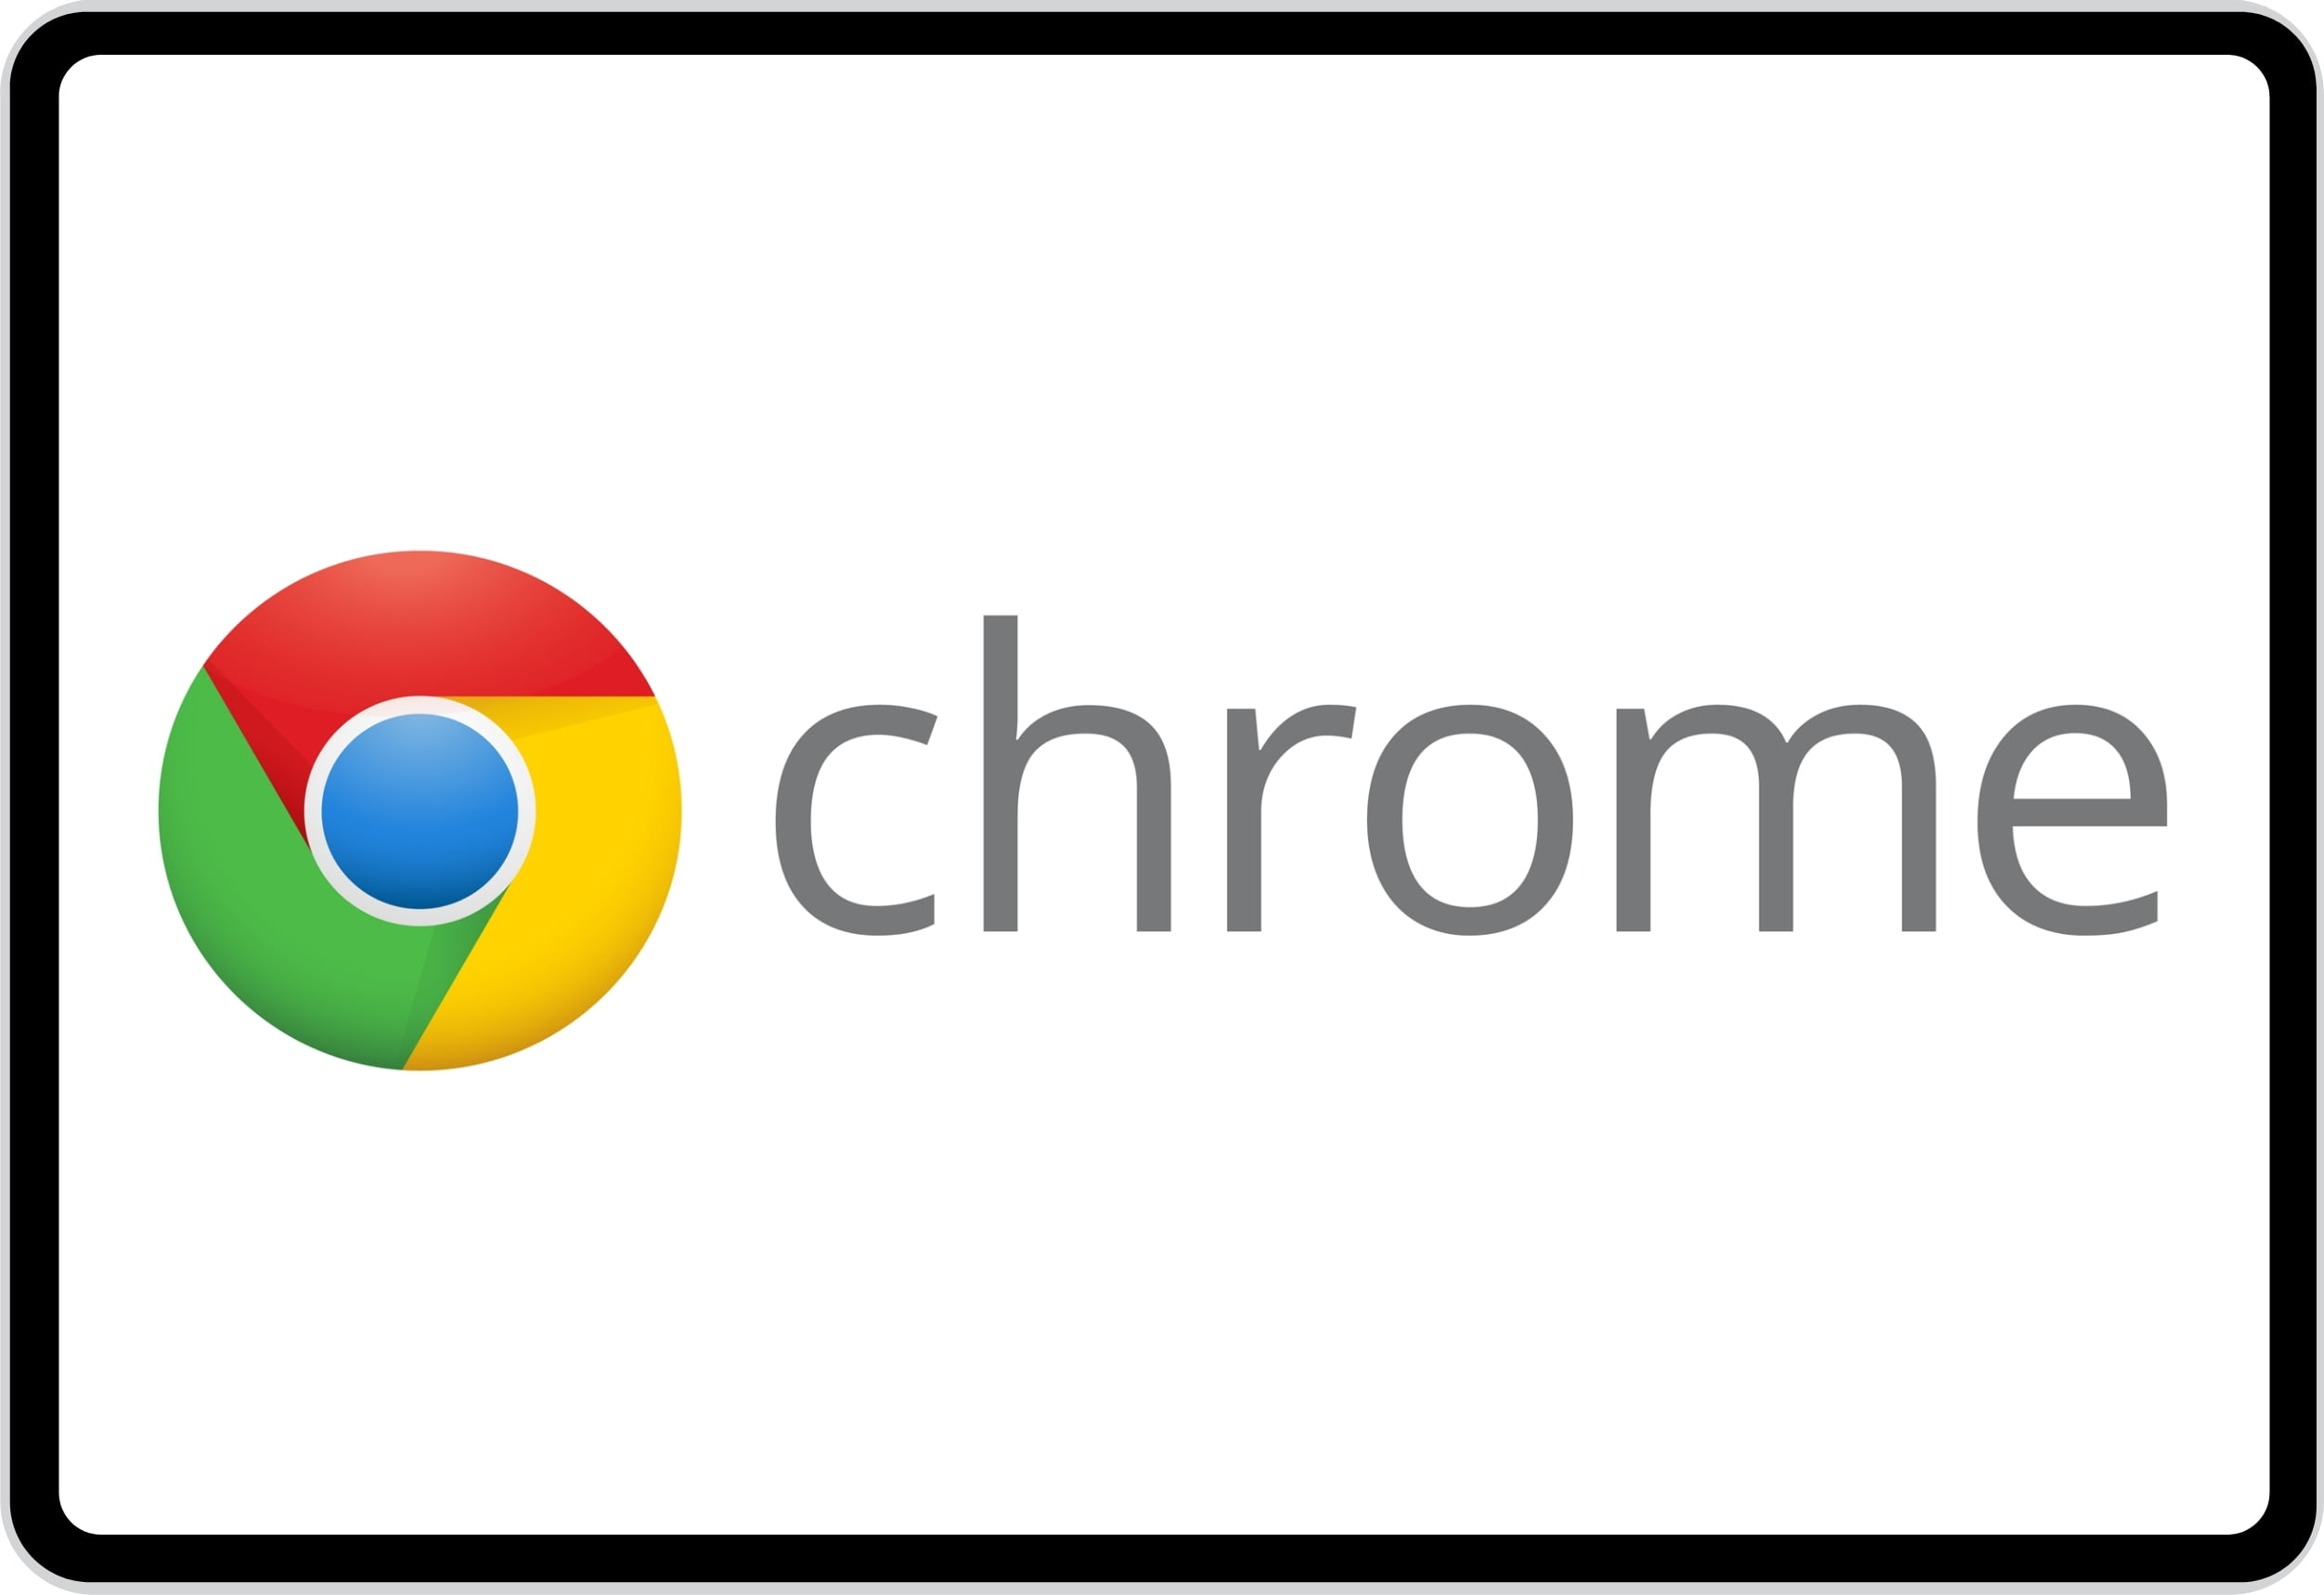 Optimized for Chrome